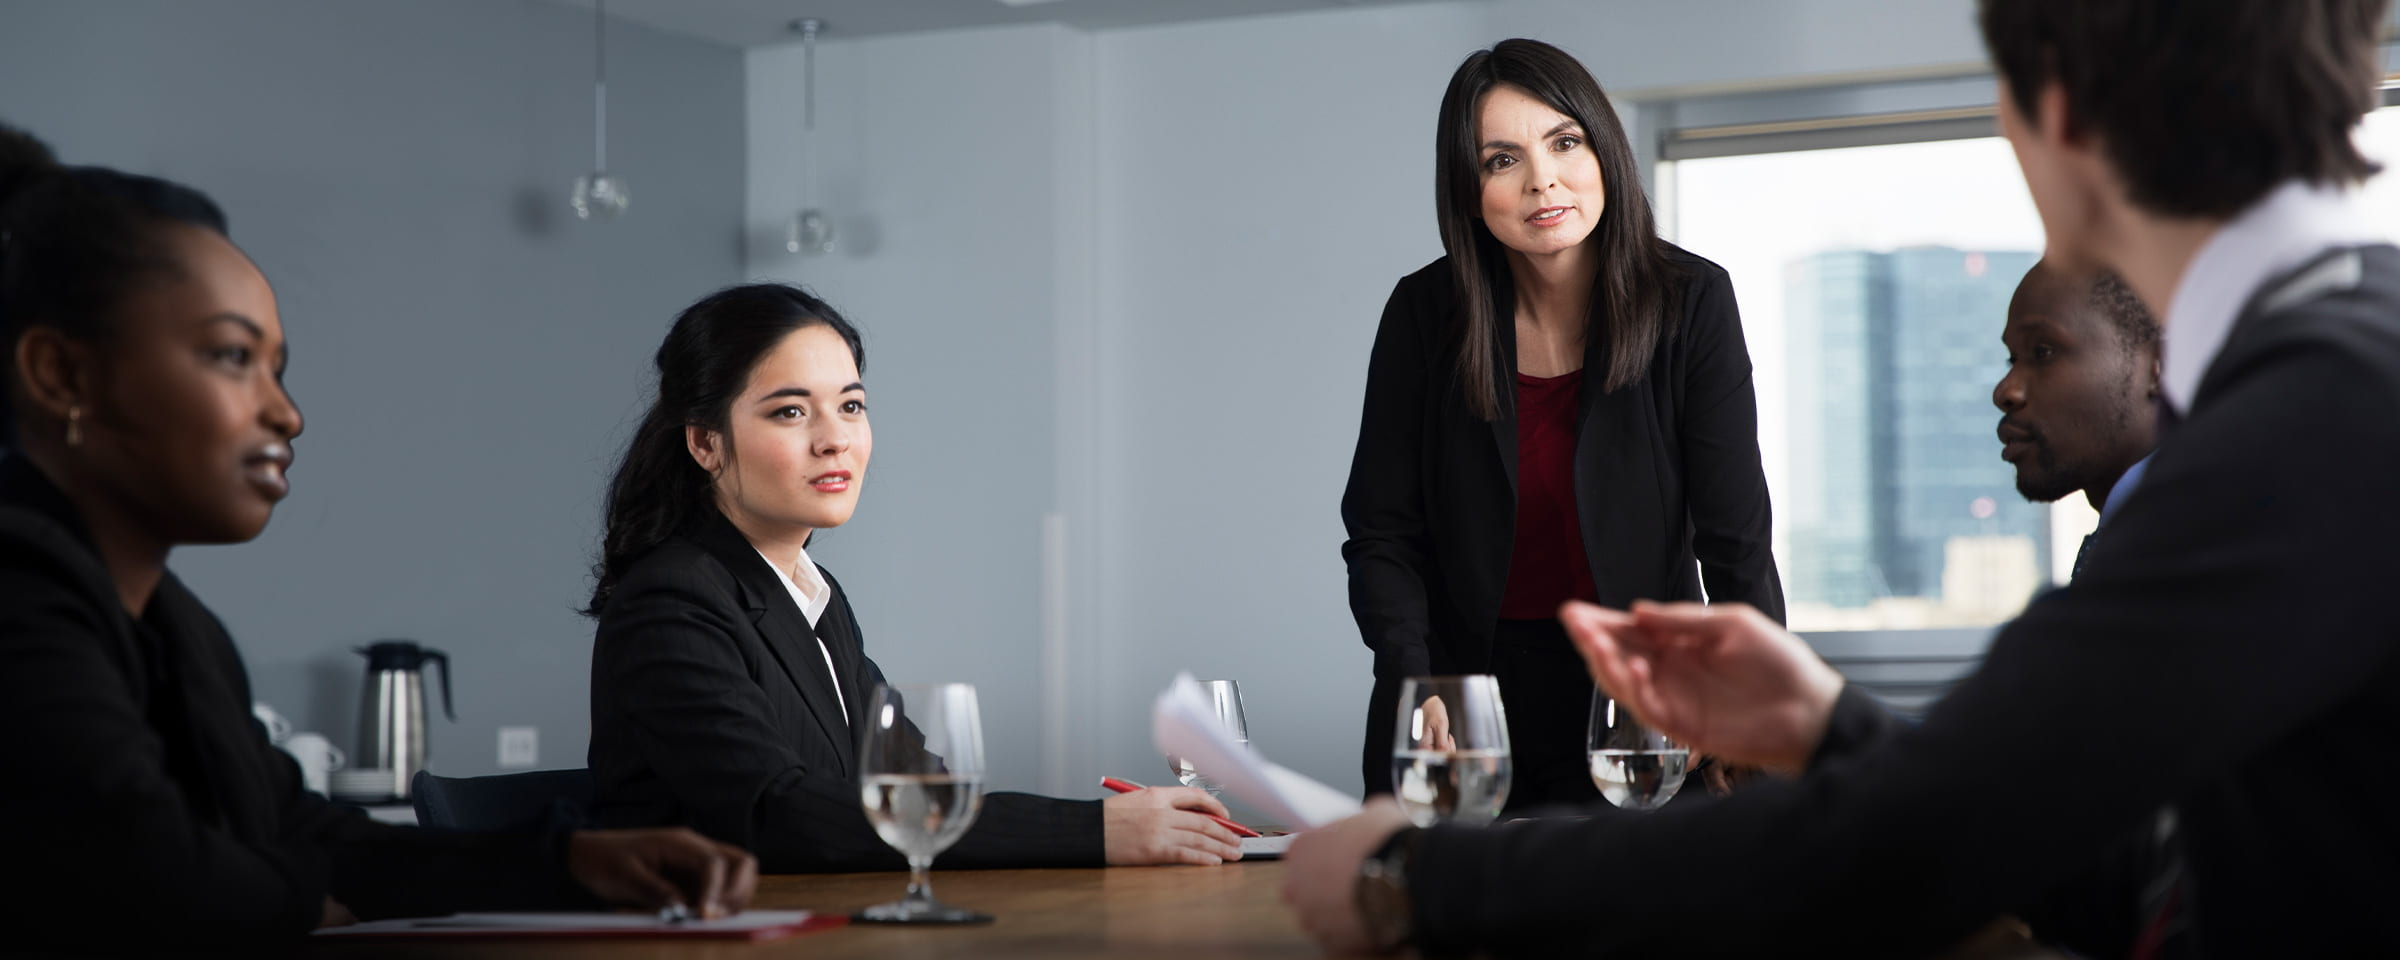 Women and men attending a boardroom business meeting